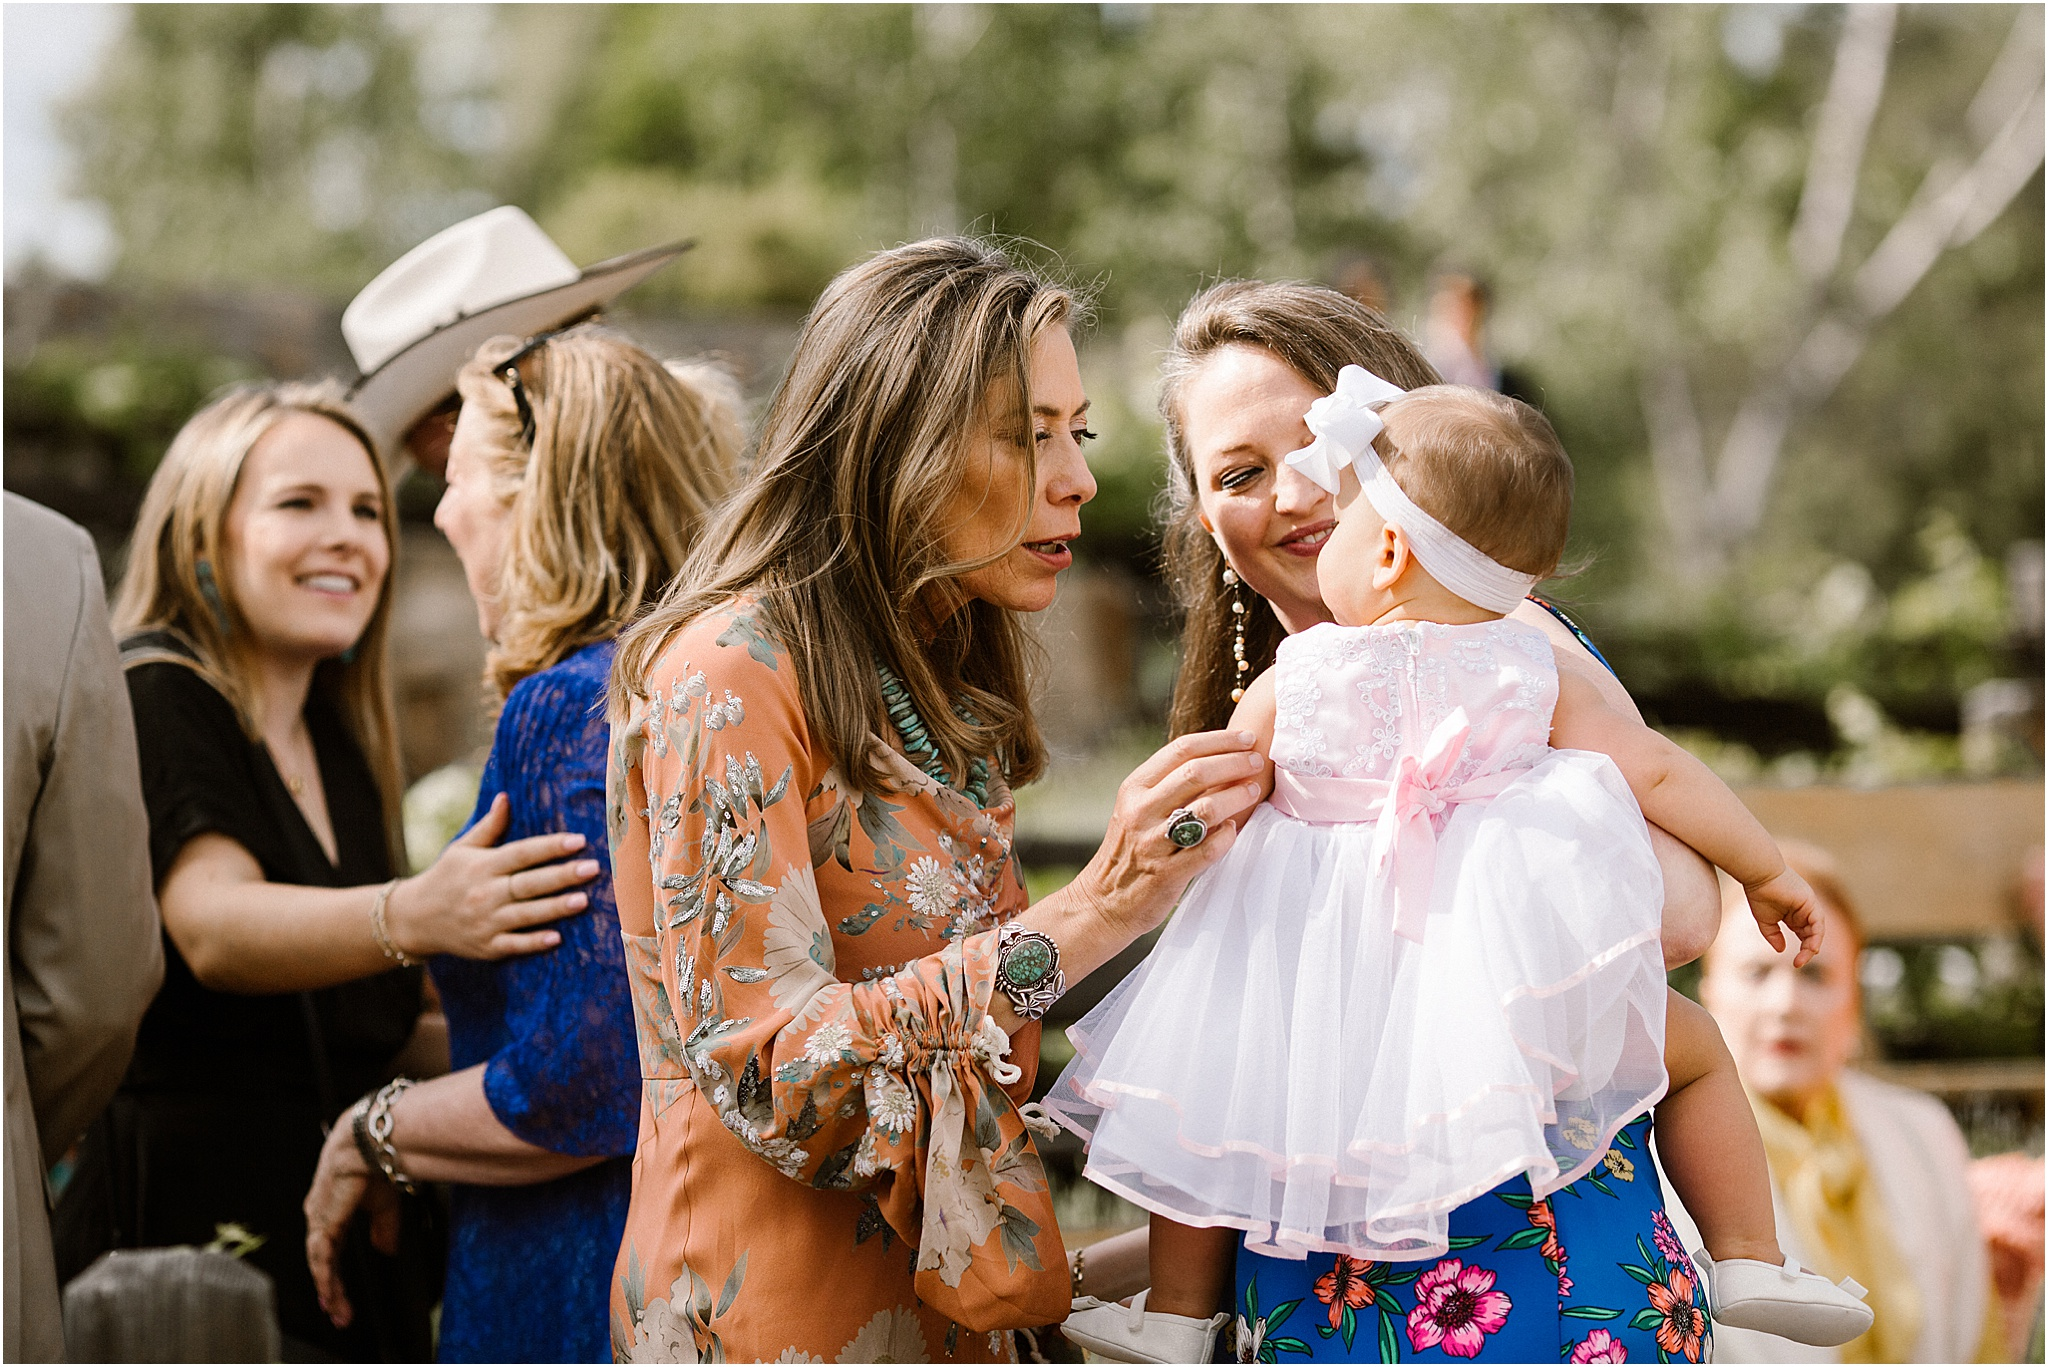 AMELIA_JASON_SANTA FE_ WEDDING_BLUE ROSE PHOTOGRAPHY73